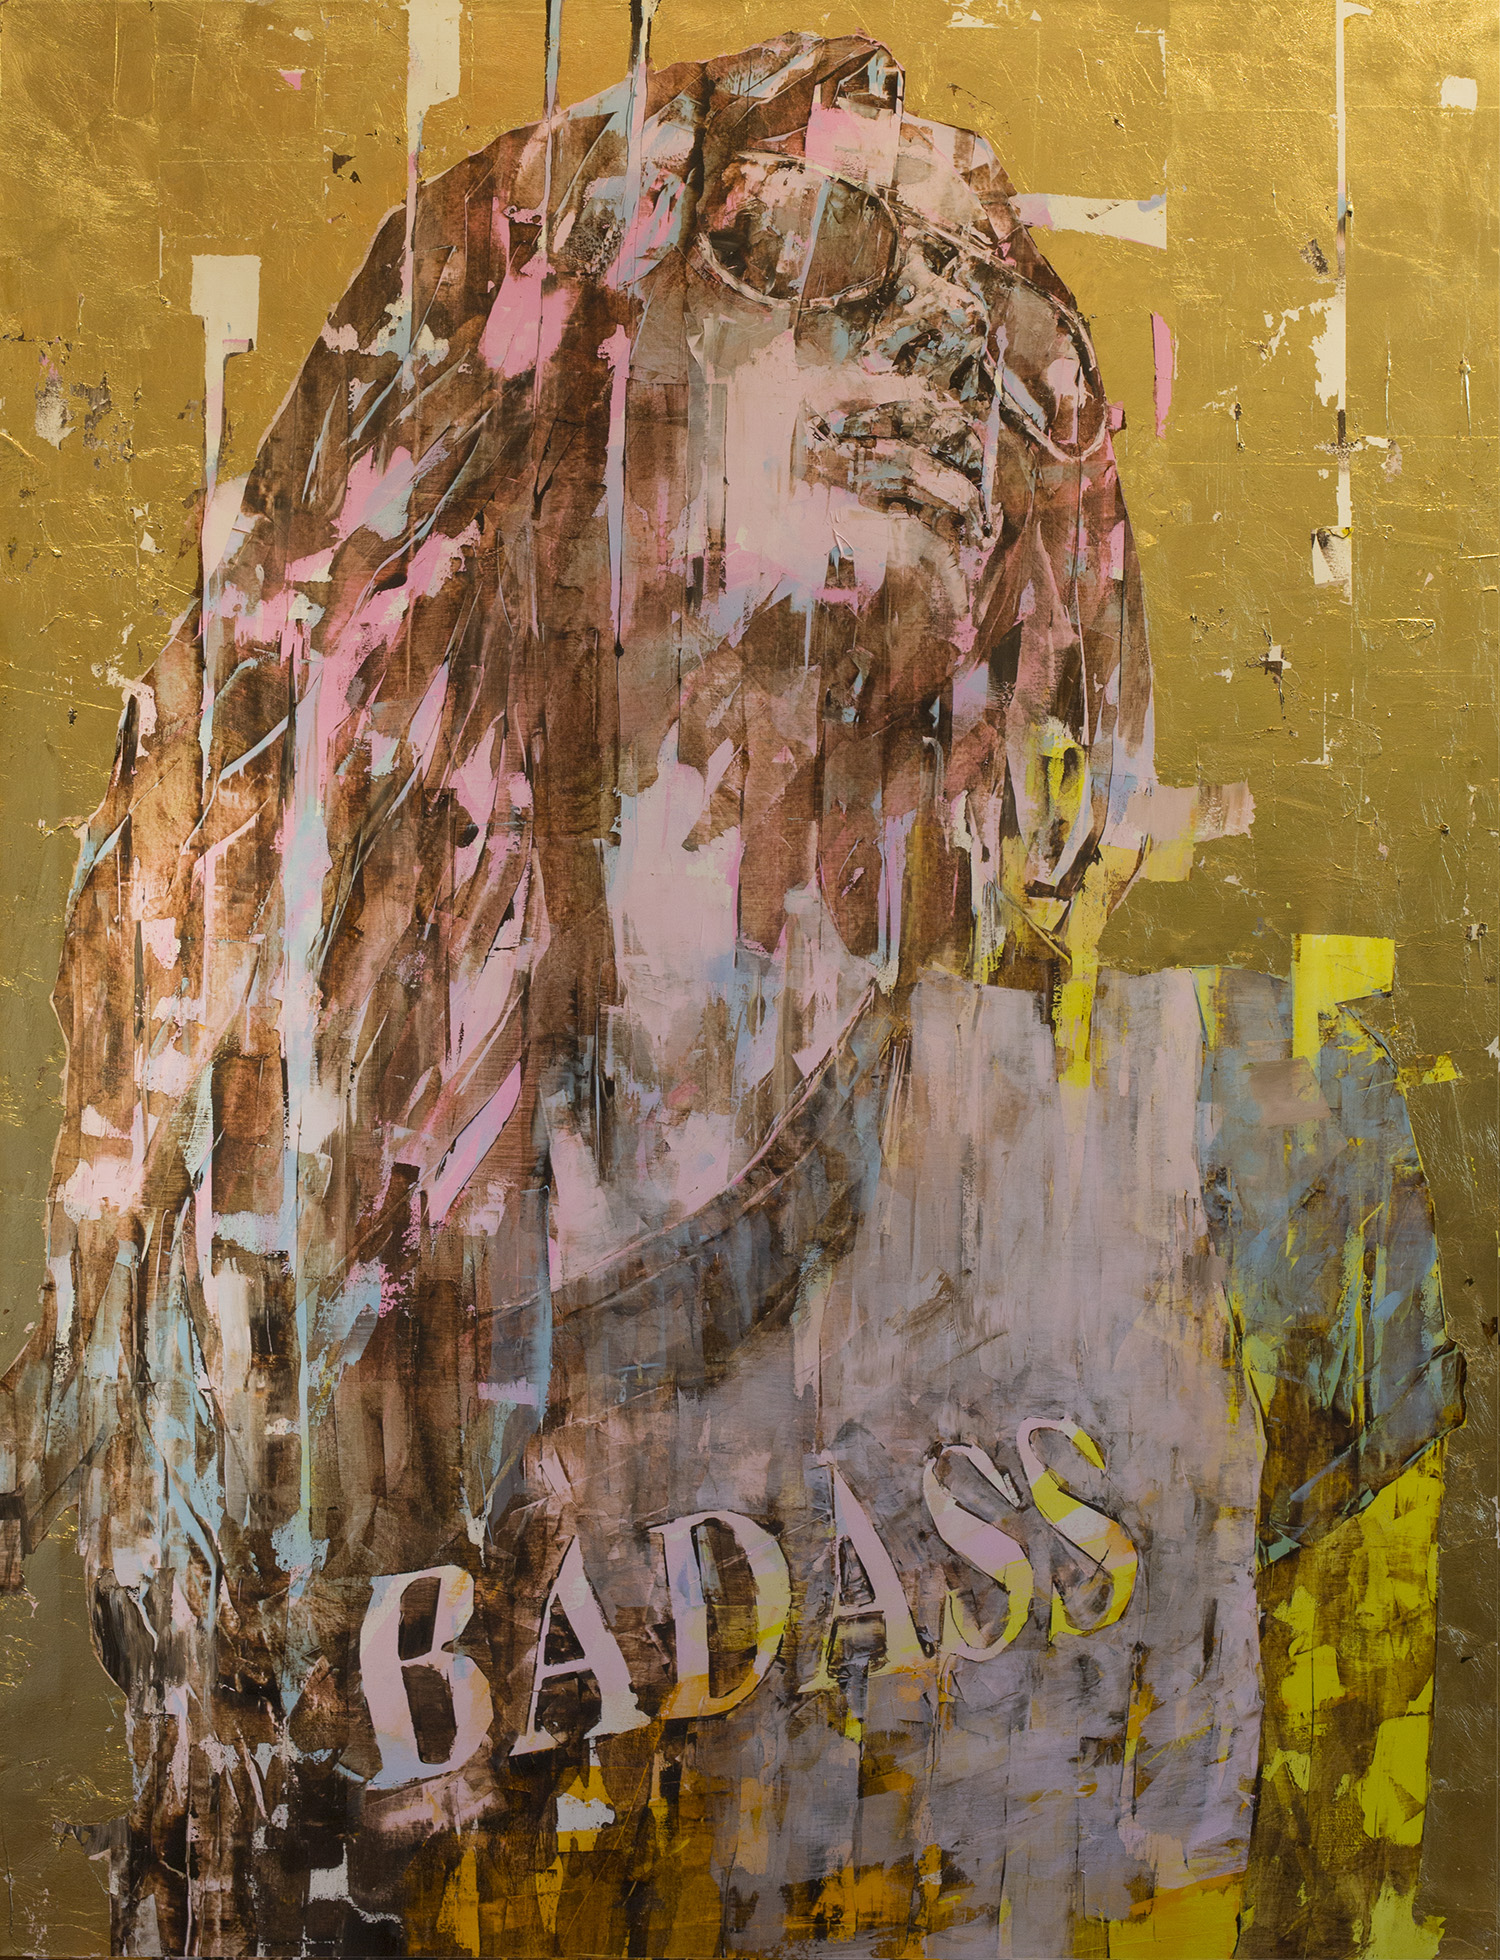 """Super Gold Badass"" 55x73"